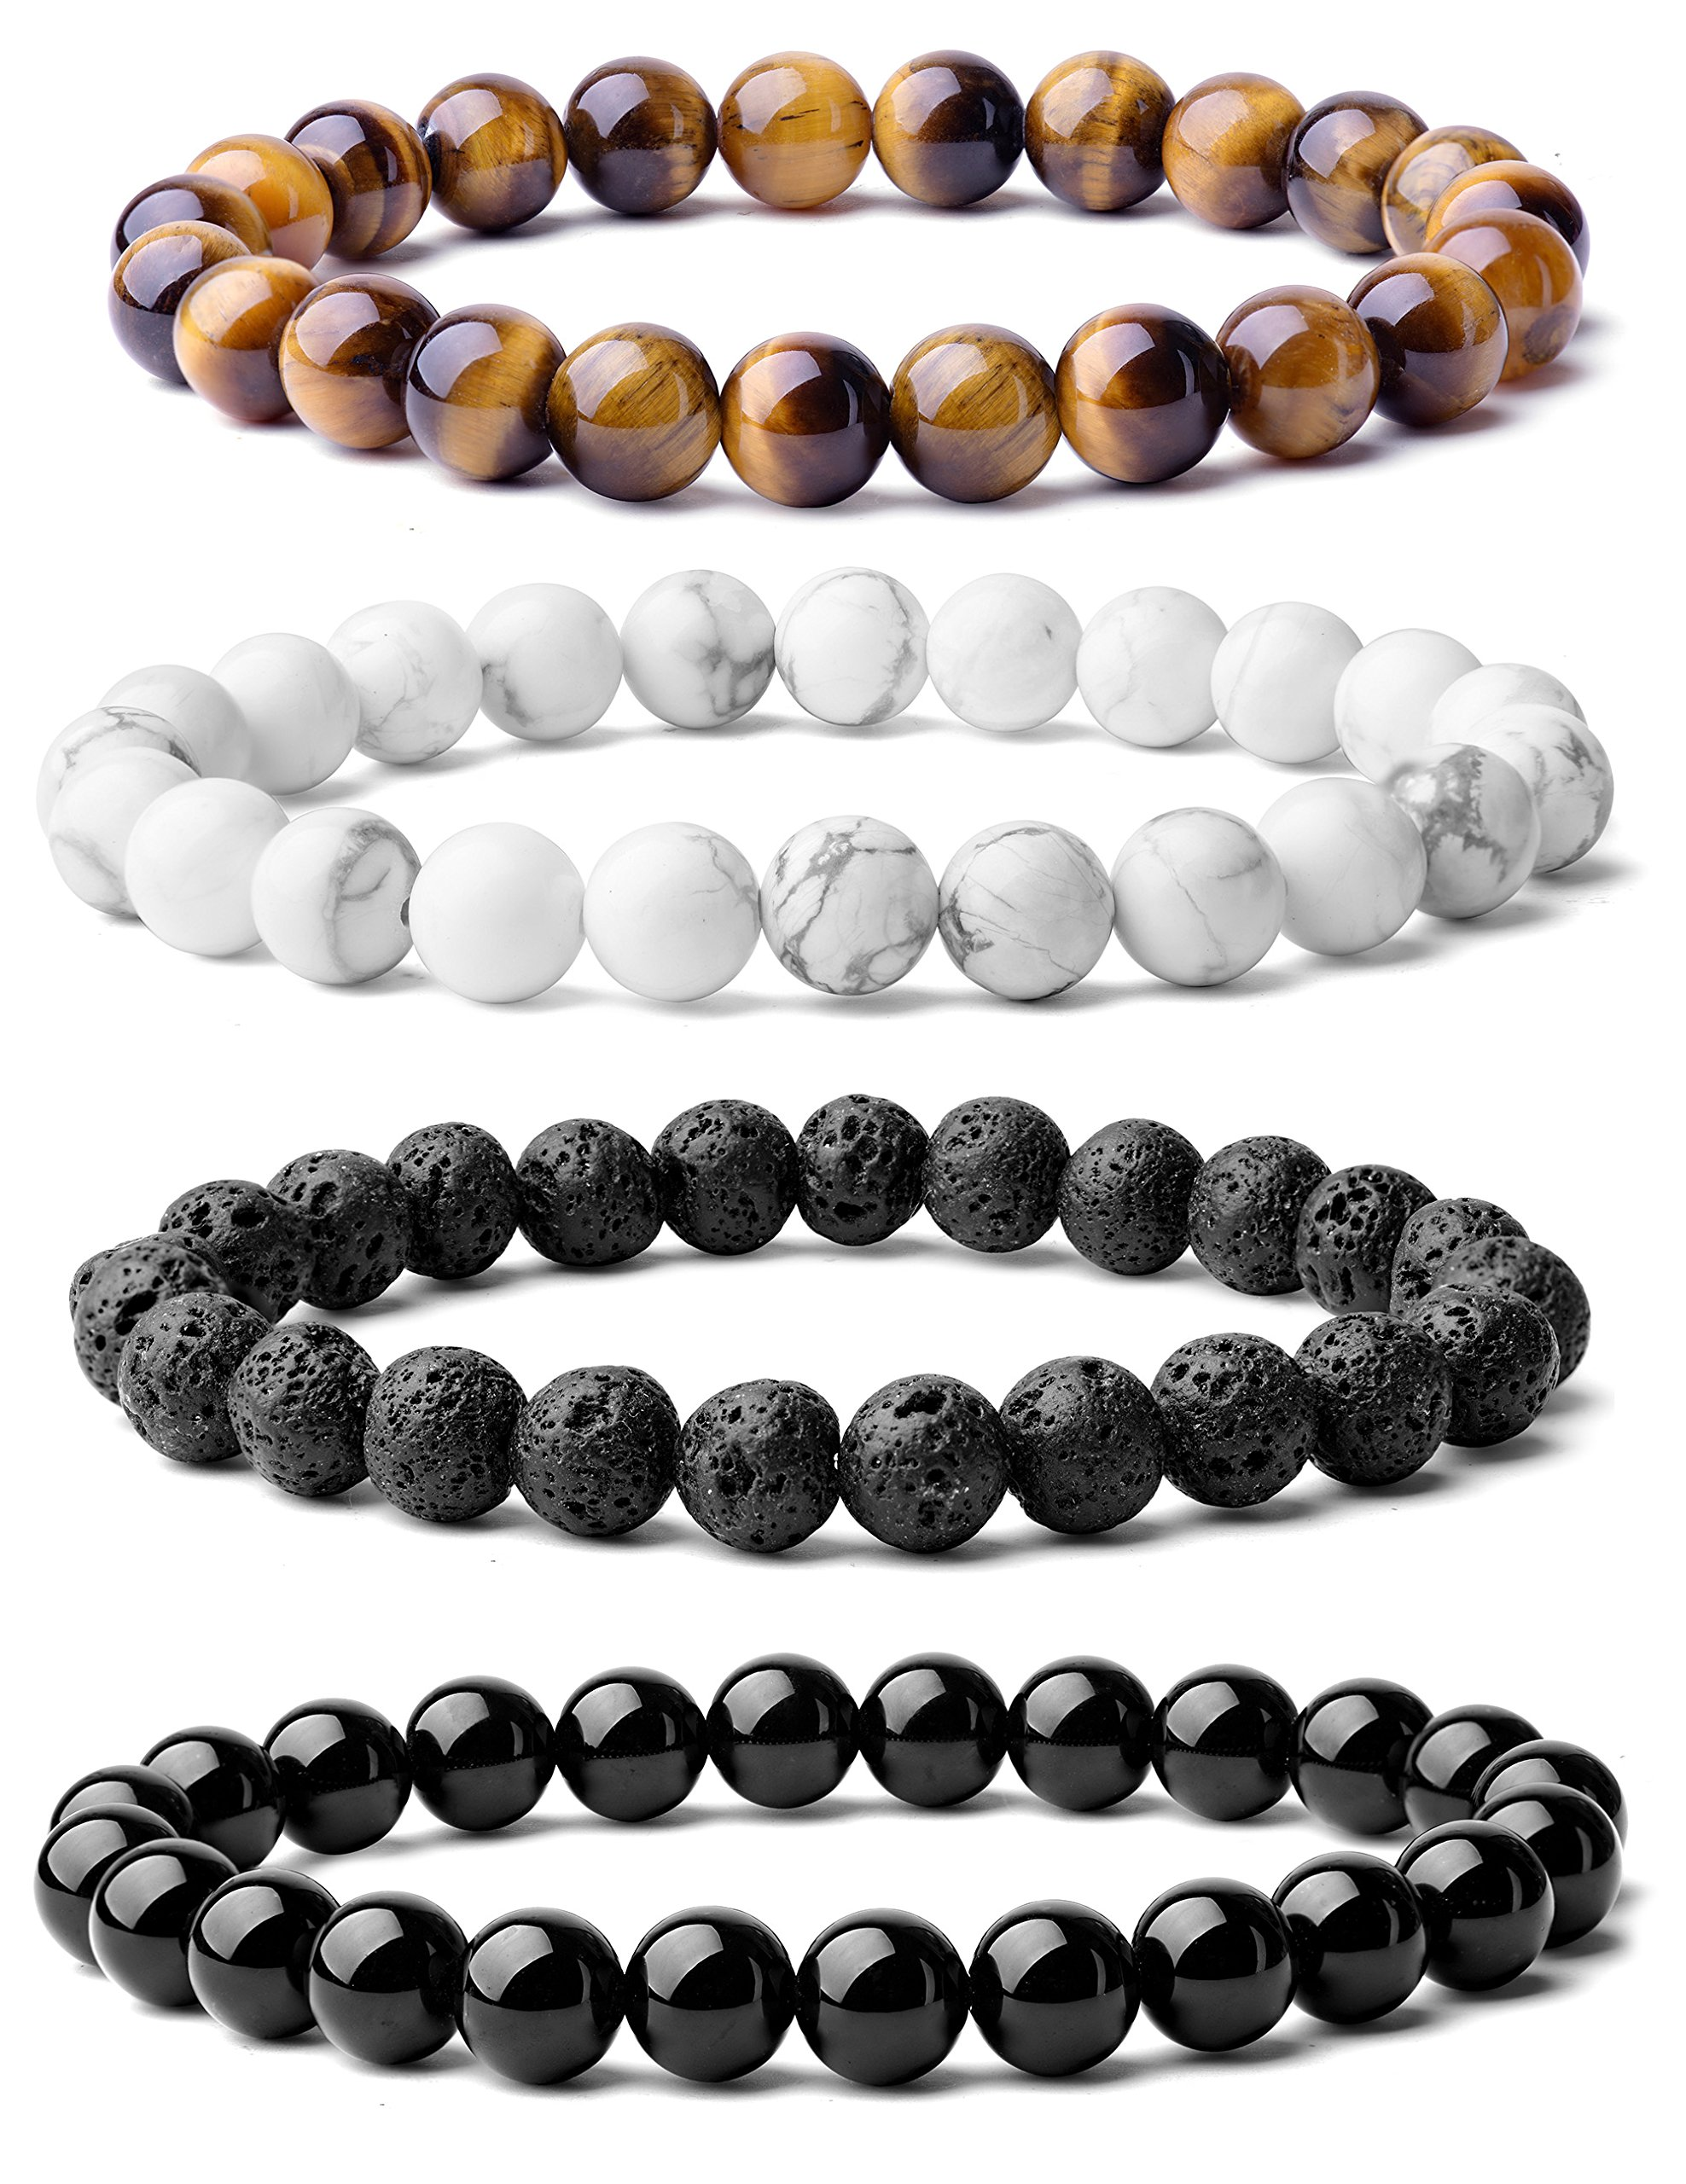 WRCXSTONE Natural 8mm Gorgeous Semi-Precious Gemstones Healing Crystal Stretch Beaded Bracelet Unisex (4 Pieces A Set(4 Colors)) by WRCXSTONE